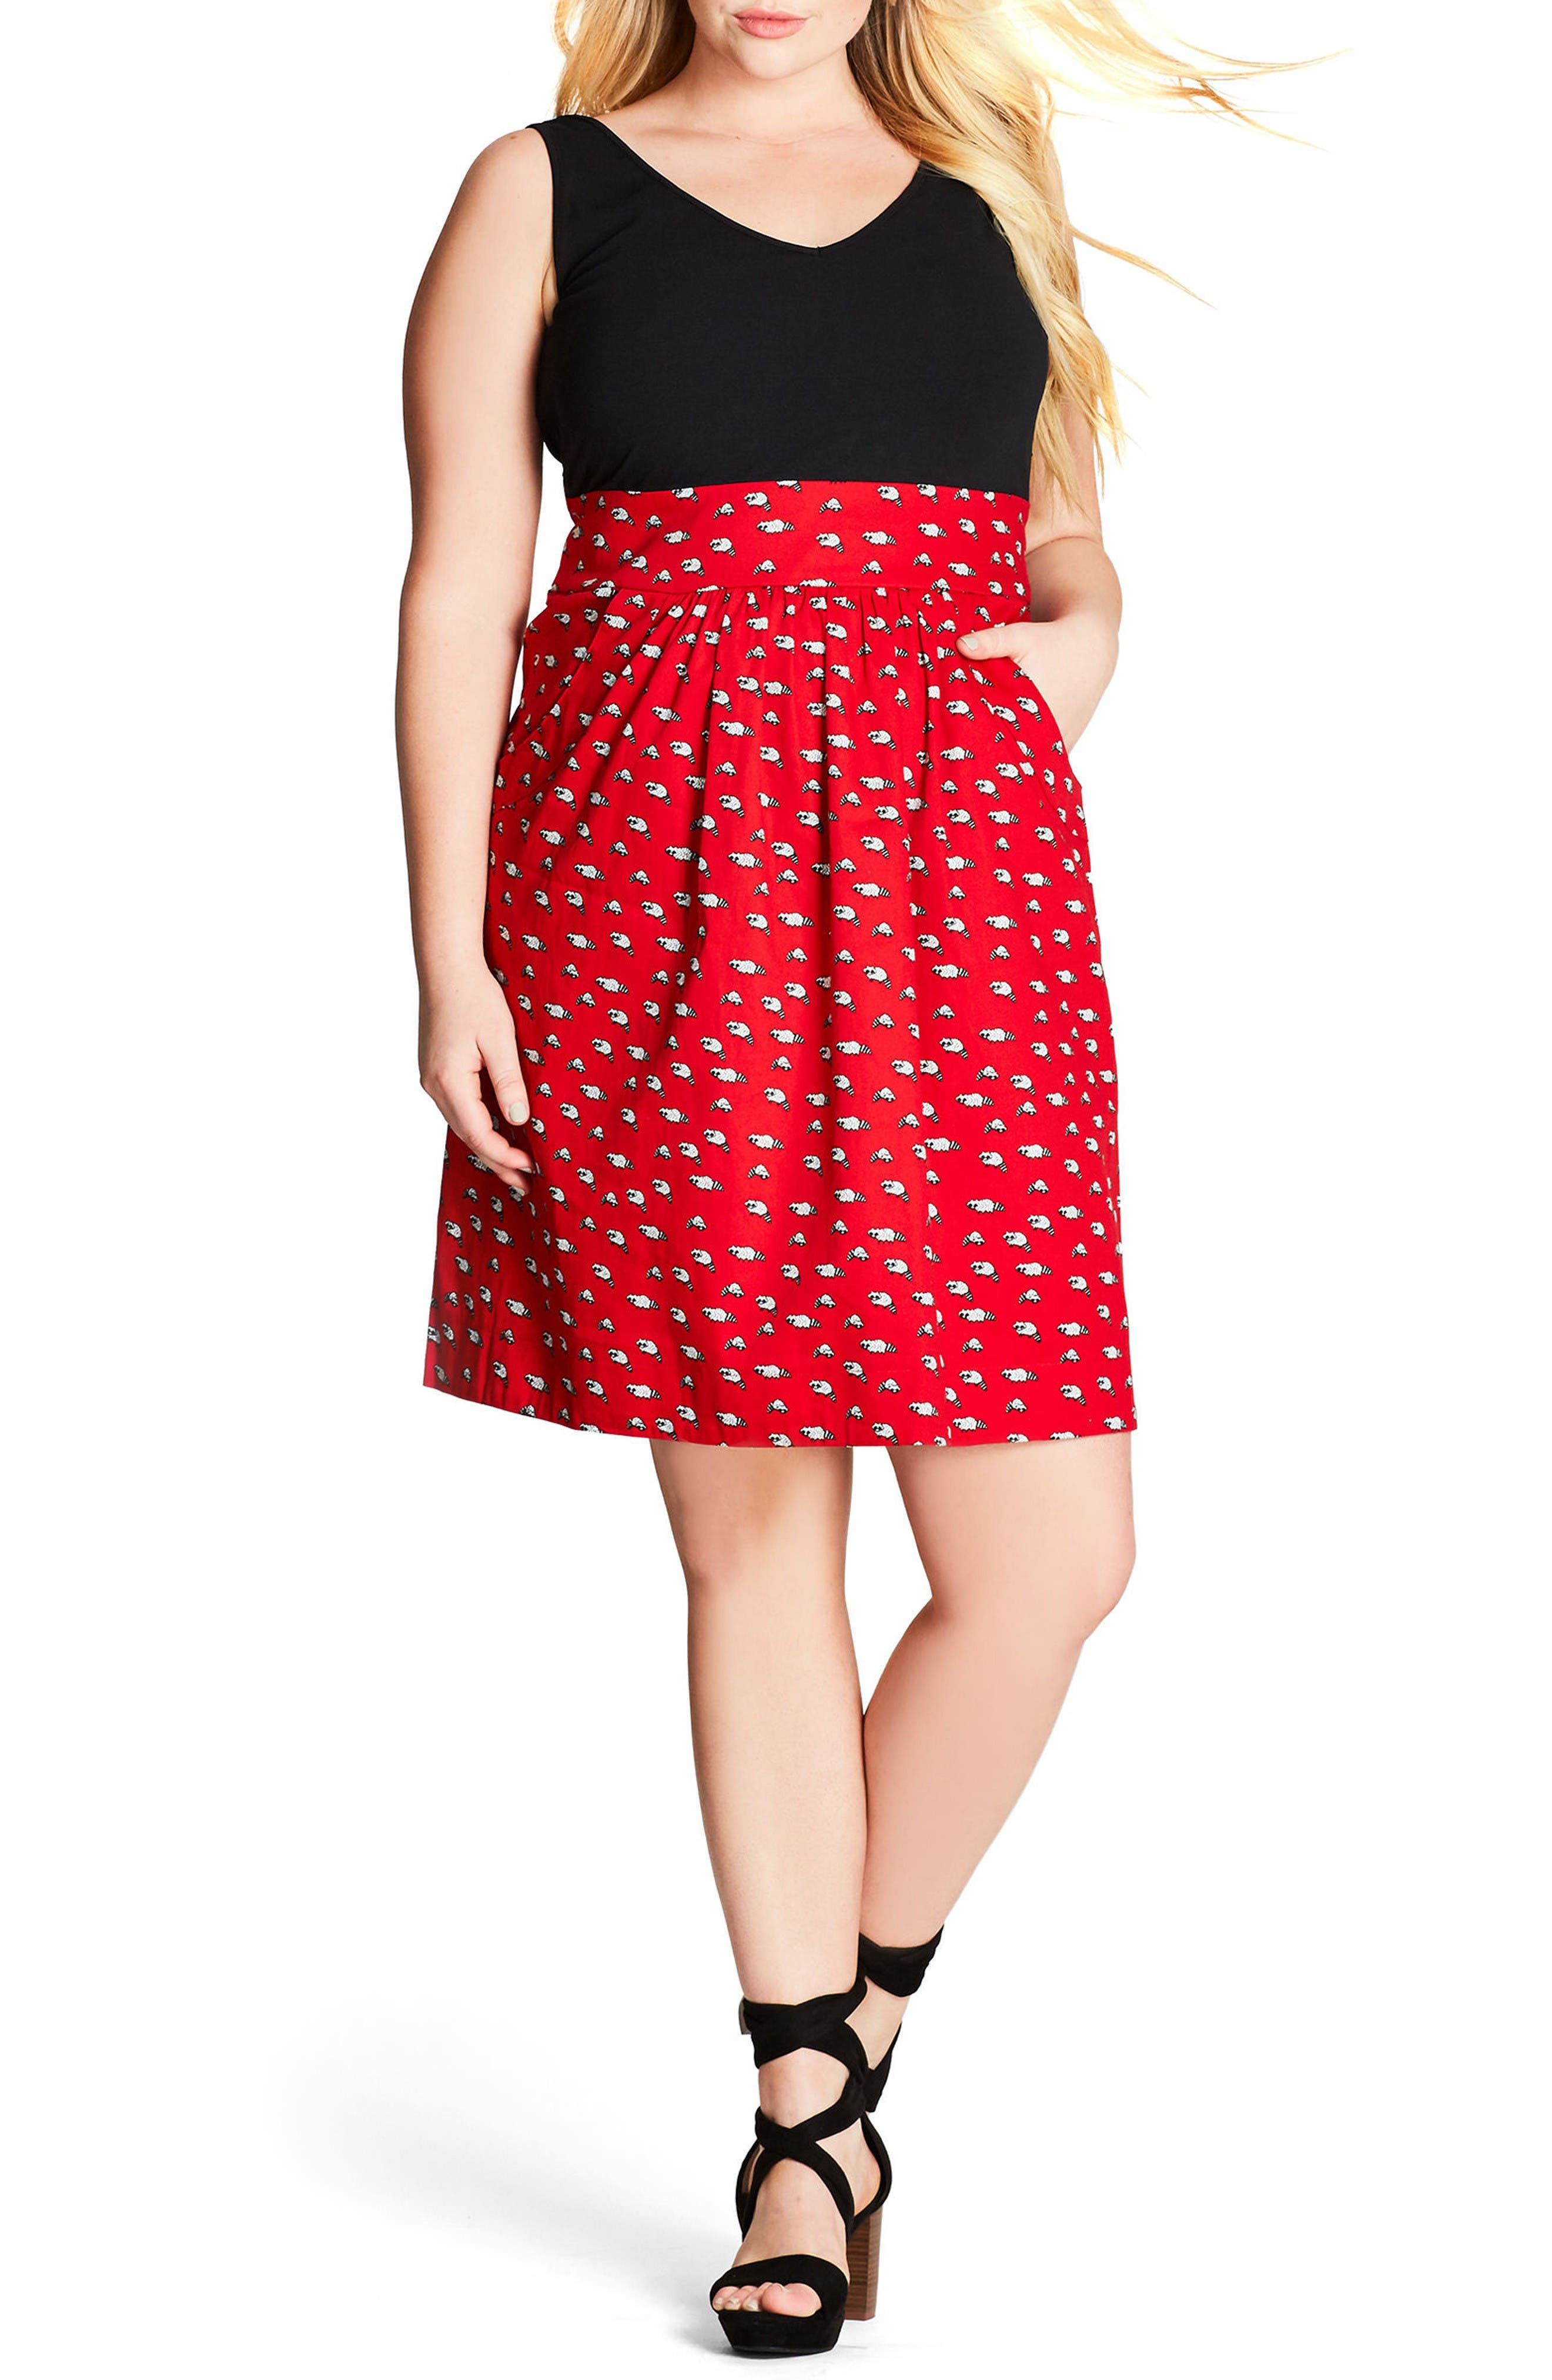 Nordstrom   We're a fashion specialty retailer pinning women's fashion & men's style. See our favorite dresses, handbags, shoes, cosmetics, jewelry, home decor & more.